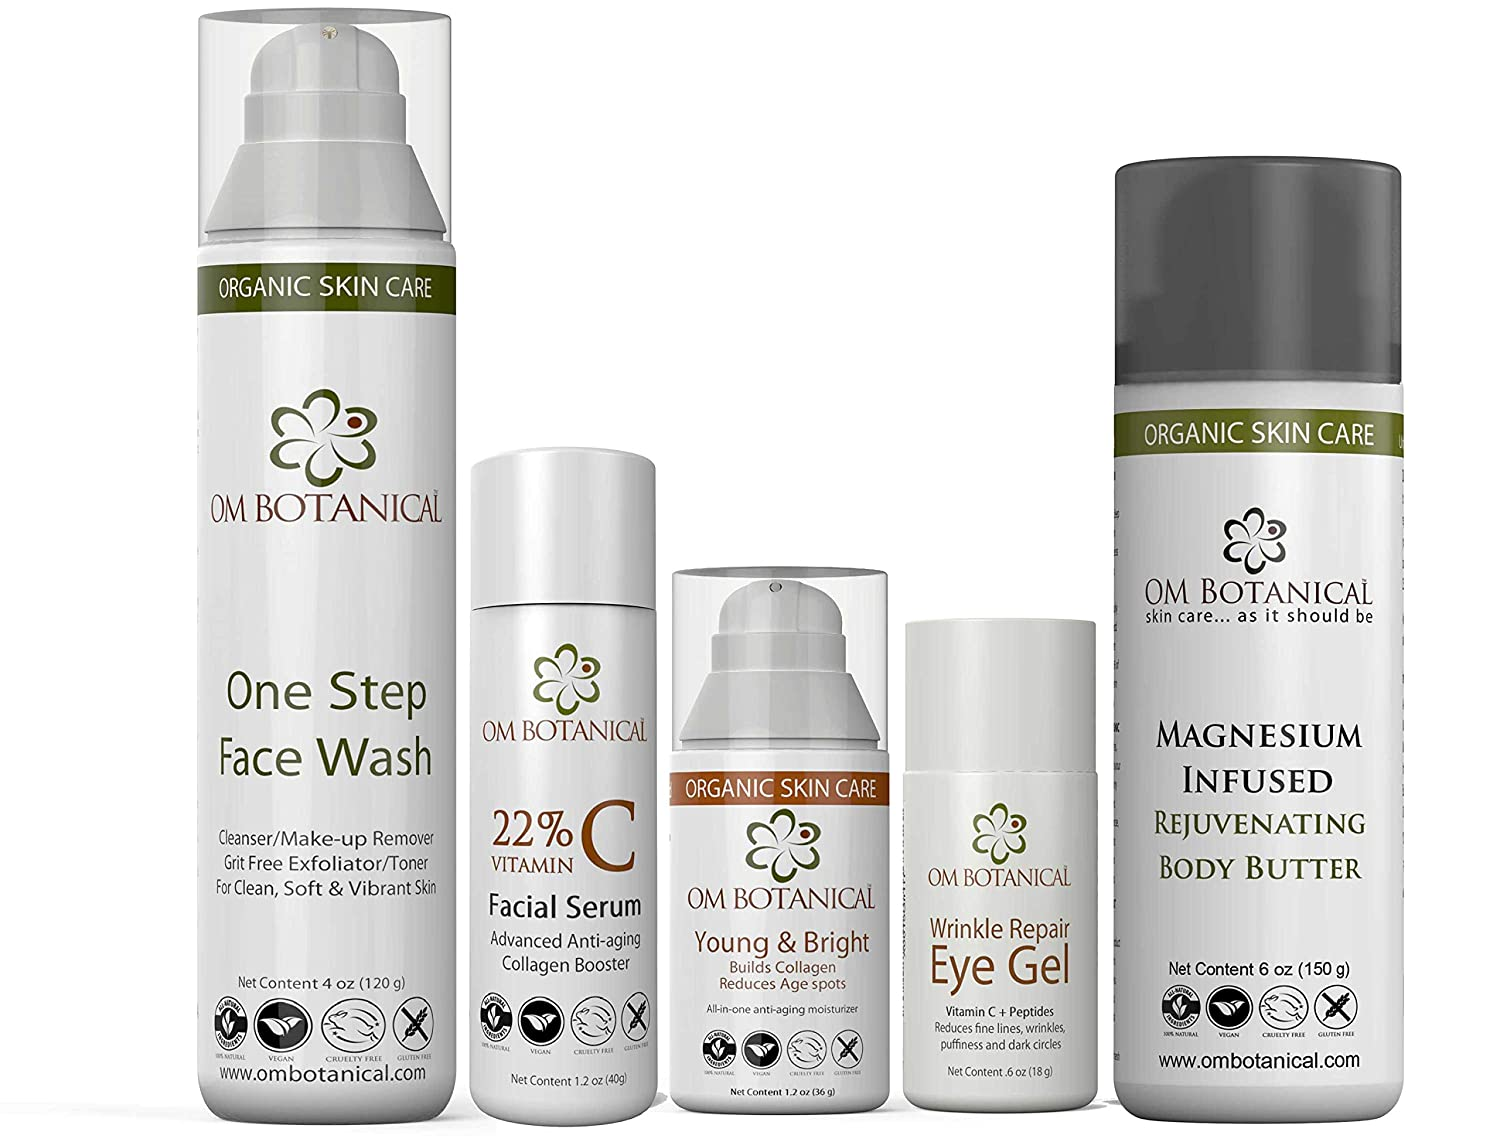 Advanced Anti-Aging Kit - All-in-one Face Wash, Vitamin C Serum, Young and Bright Facial Moisturizer w/Sunscreen, Wrinkle Repair Eye Gel, Magnesium Body Lotion | 100% Natural & Organic Ingredients